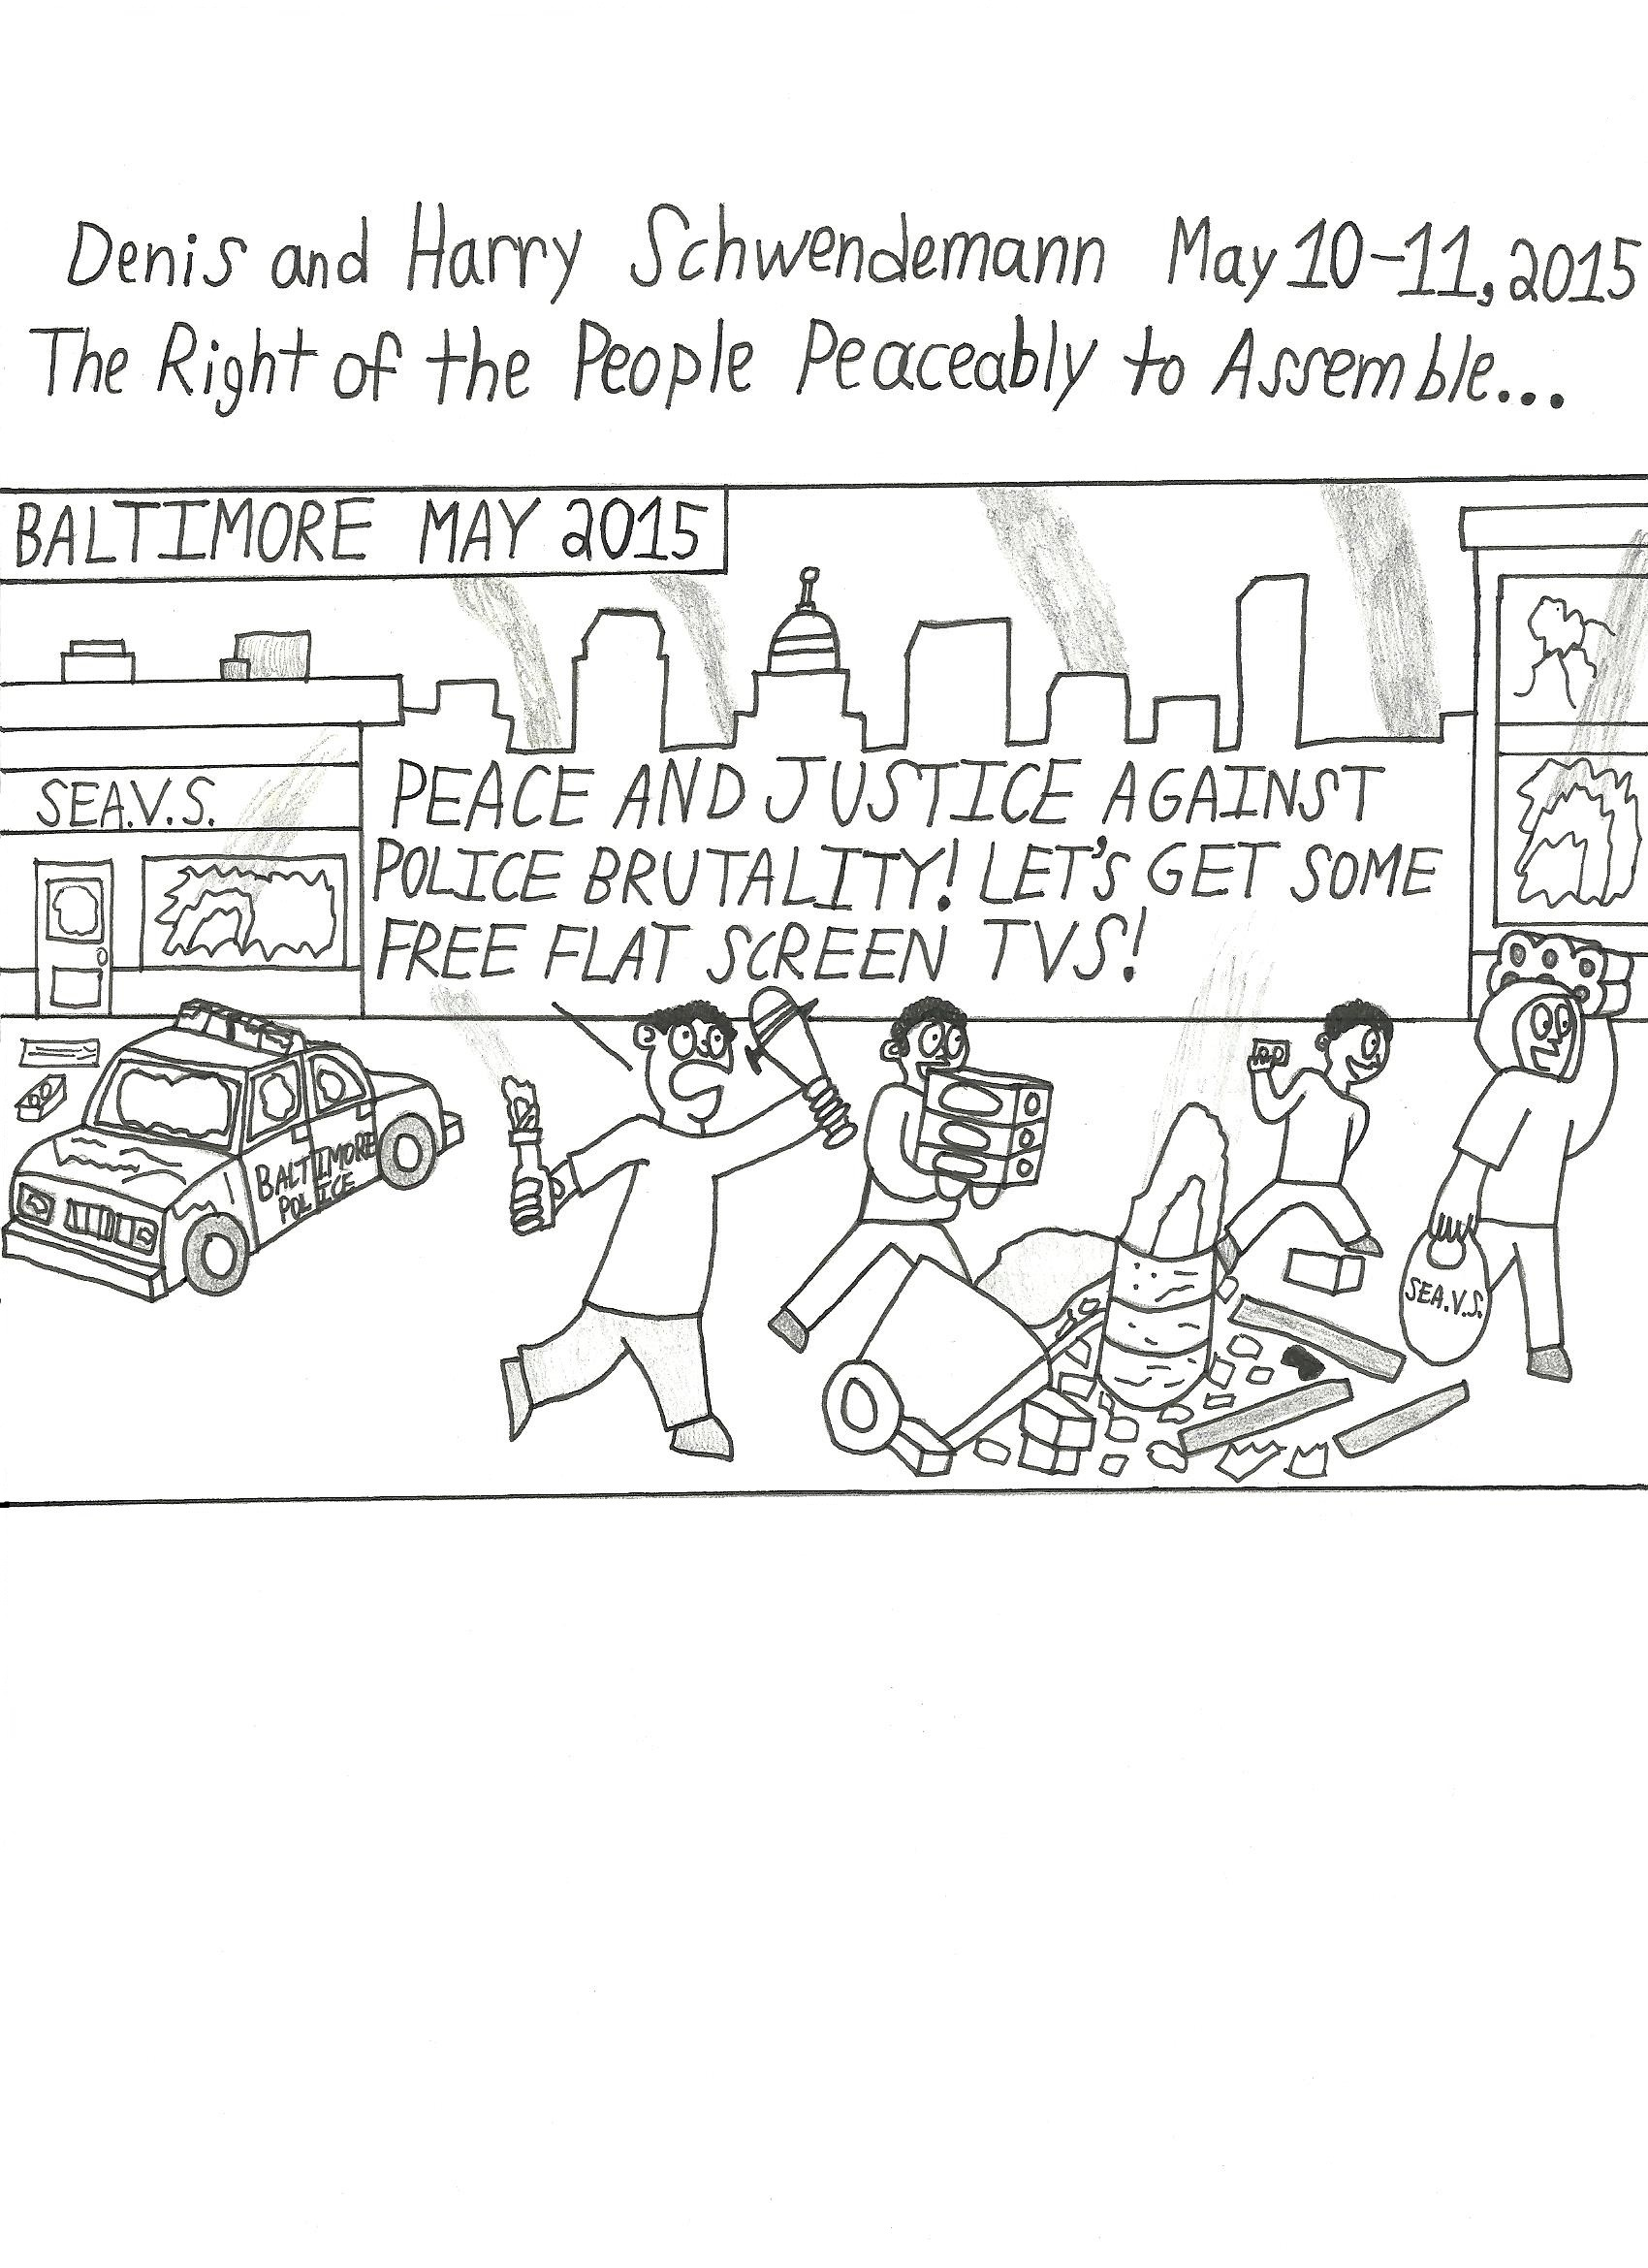 The Right of the People Peaceably to Assemble...